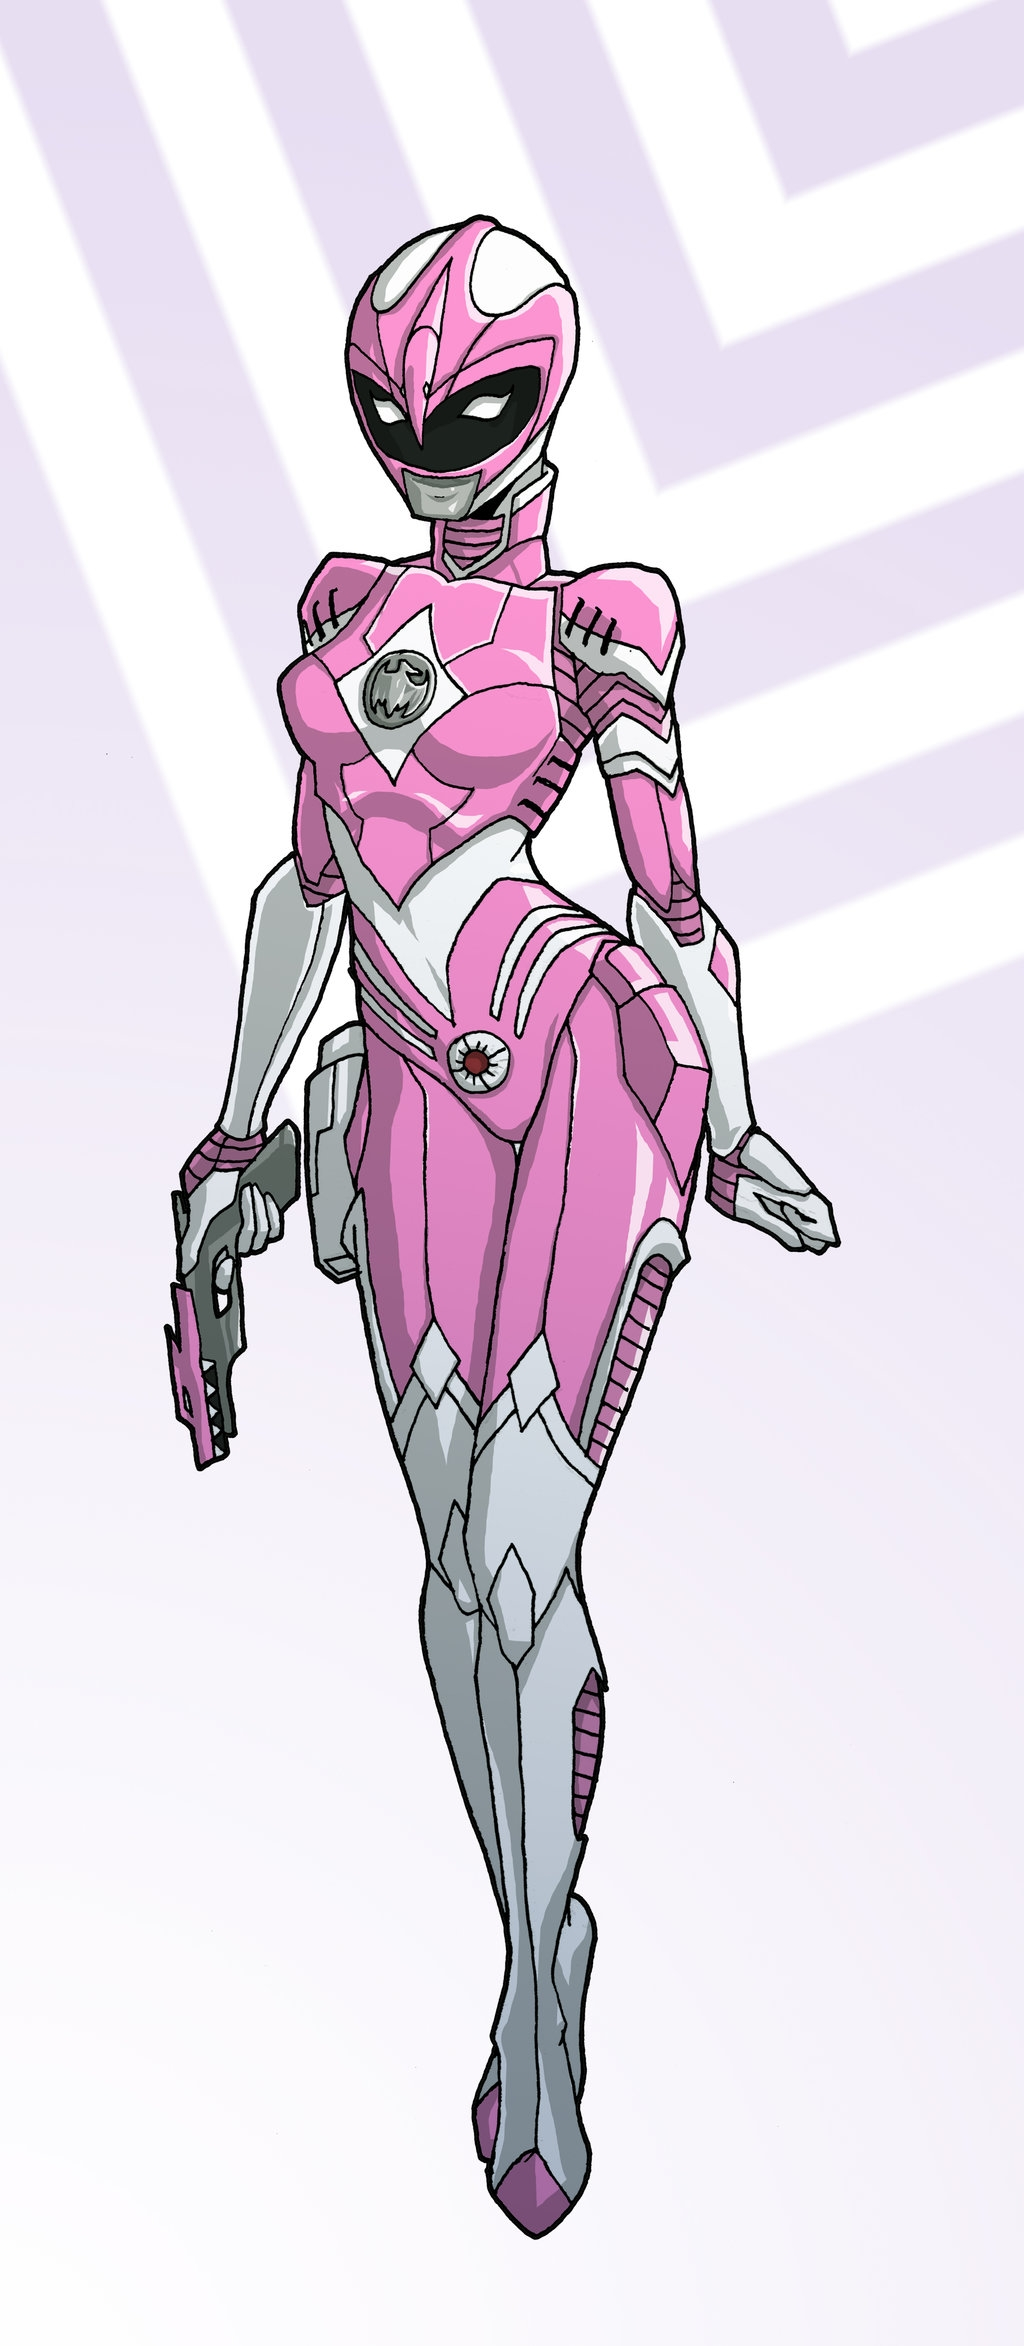 trump coloring pages - Pink Ranger